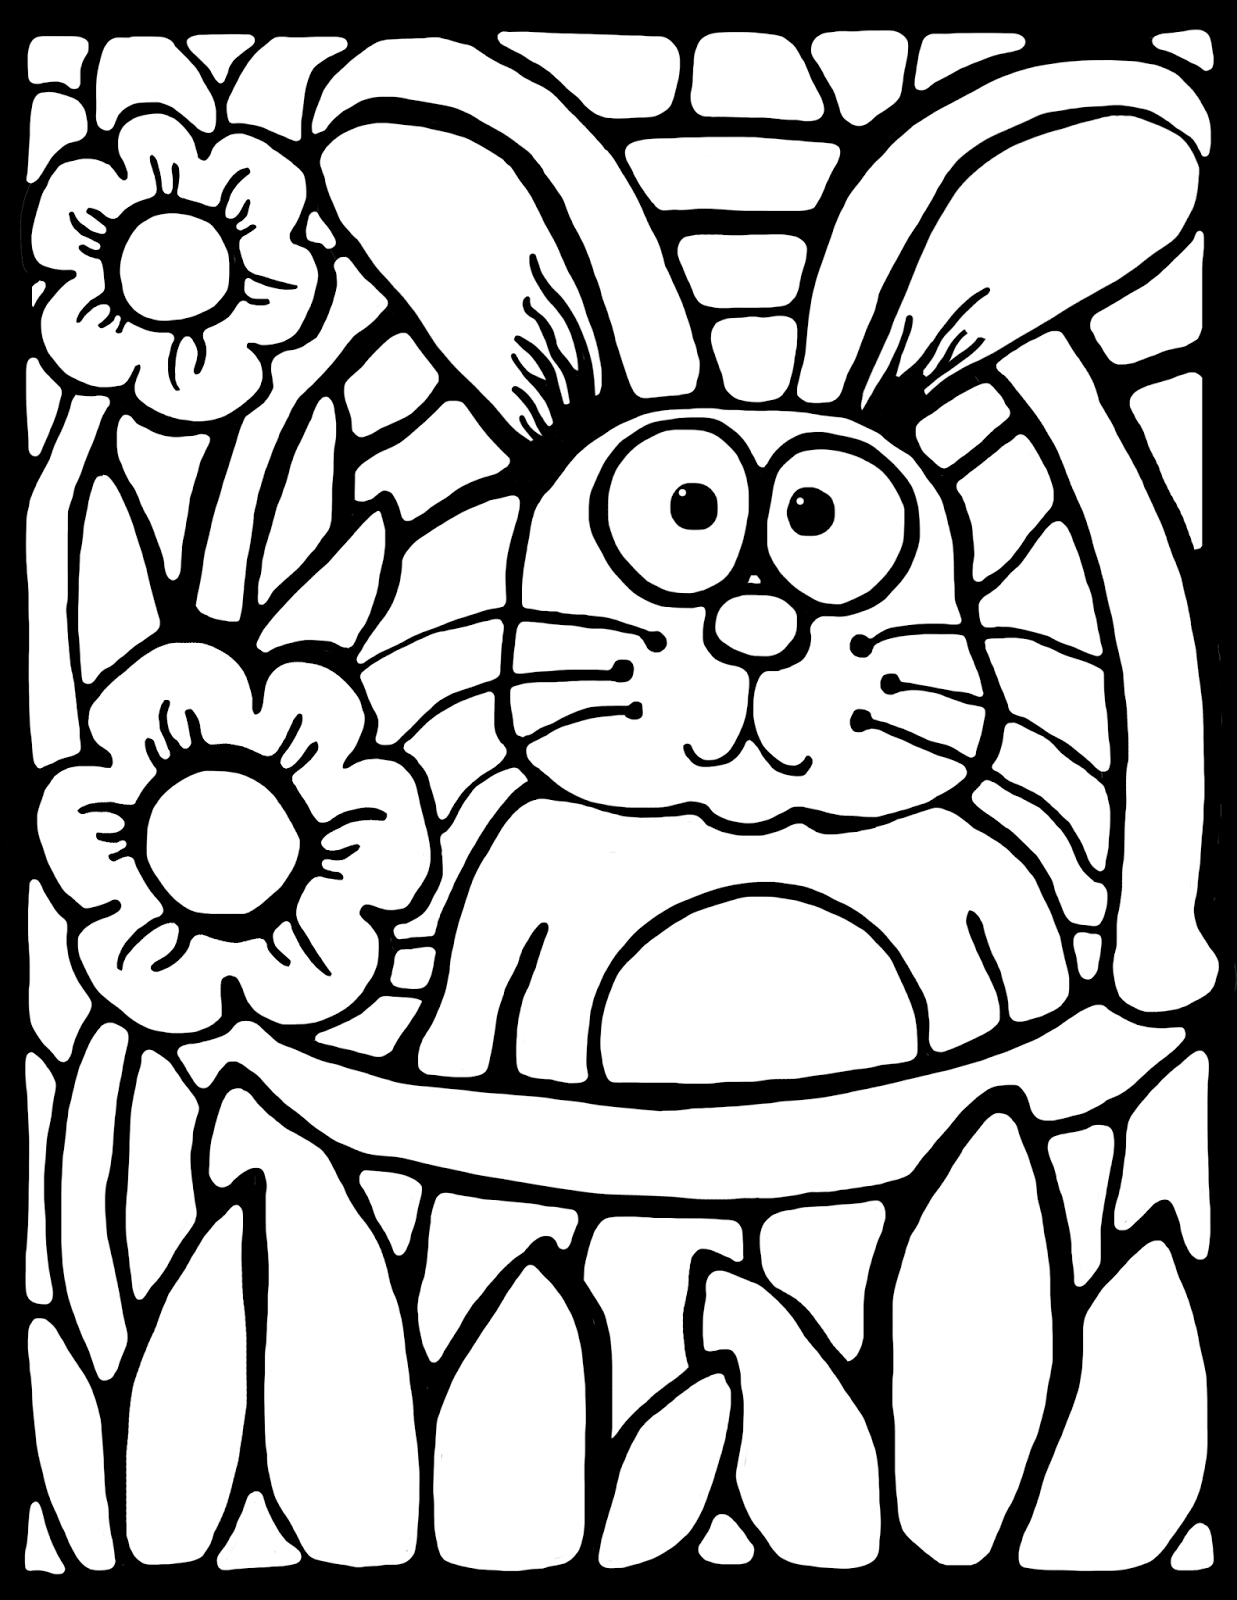 Spring and easter colouring pages - Place Value Oobleck Science And Free Easter Coloring